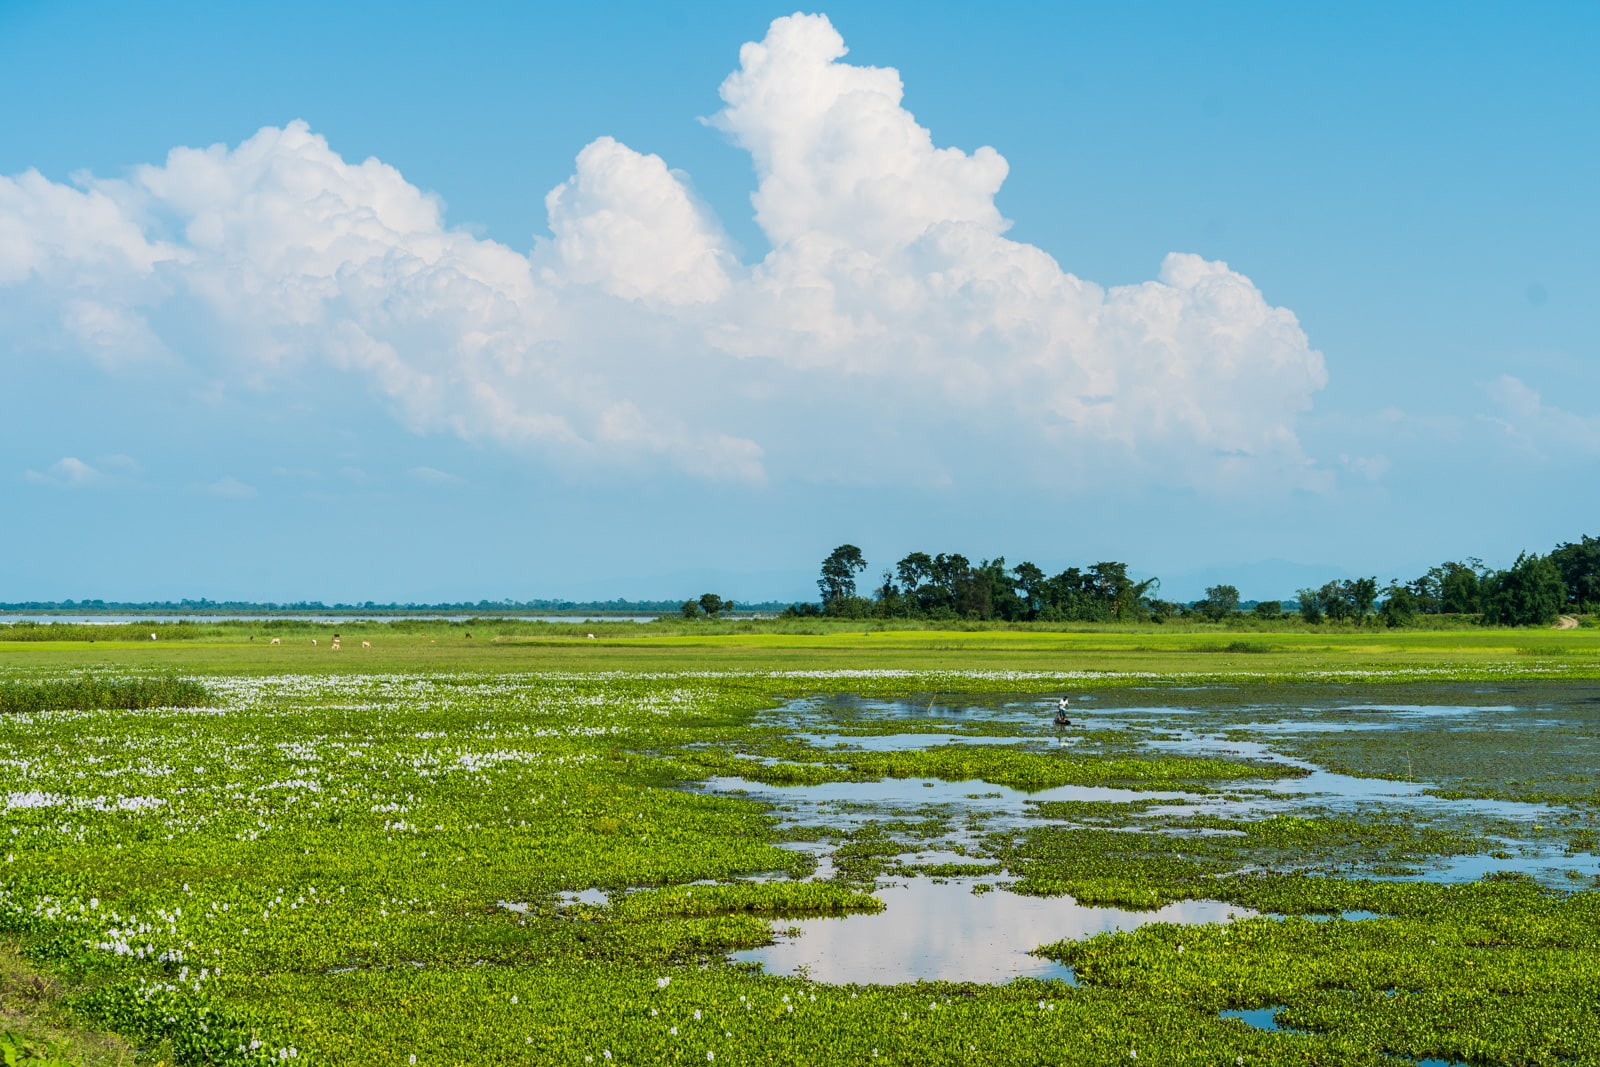 A sunny day on Majuli river island in Assam, India - Lost With Purpose travel blog